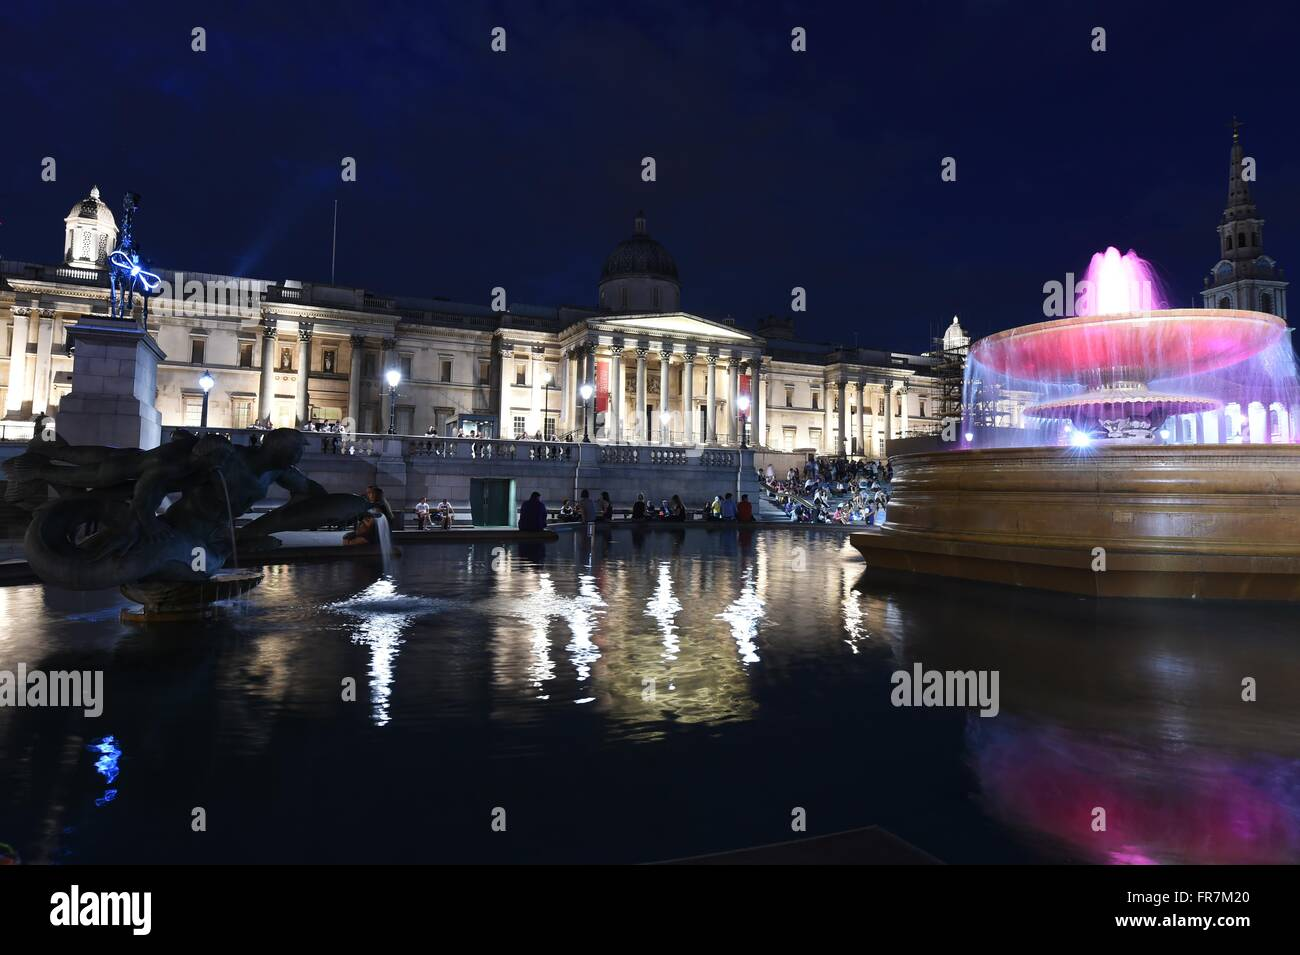 National Gallery, Trafalgar Square, art gallery in London, UK Stock Photo